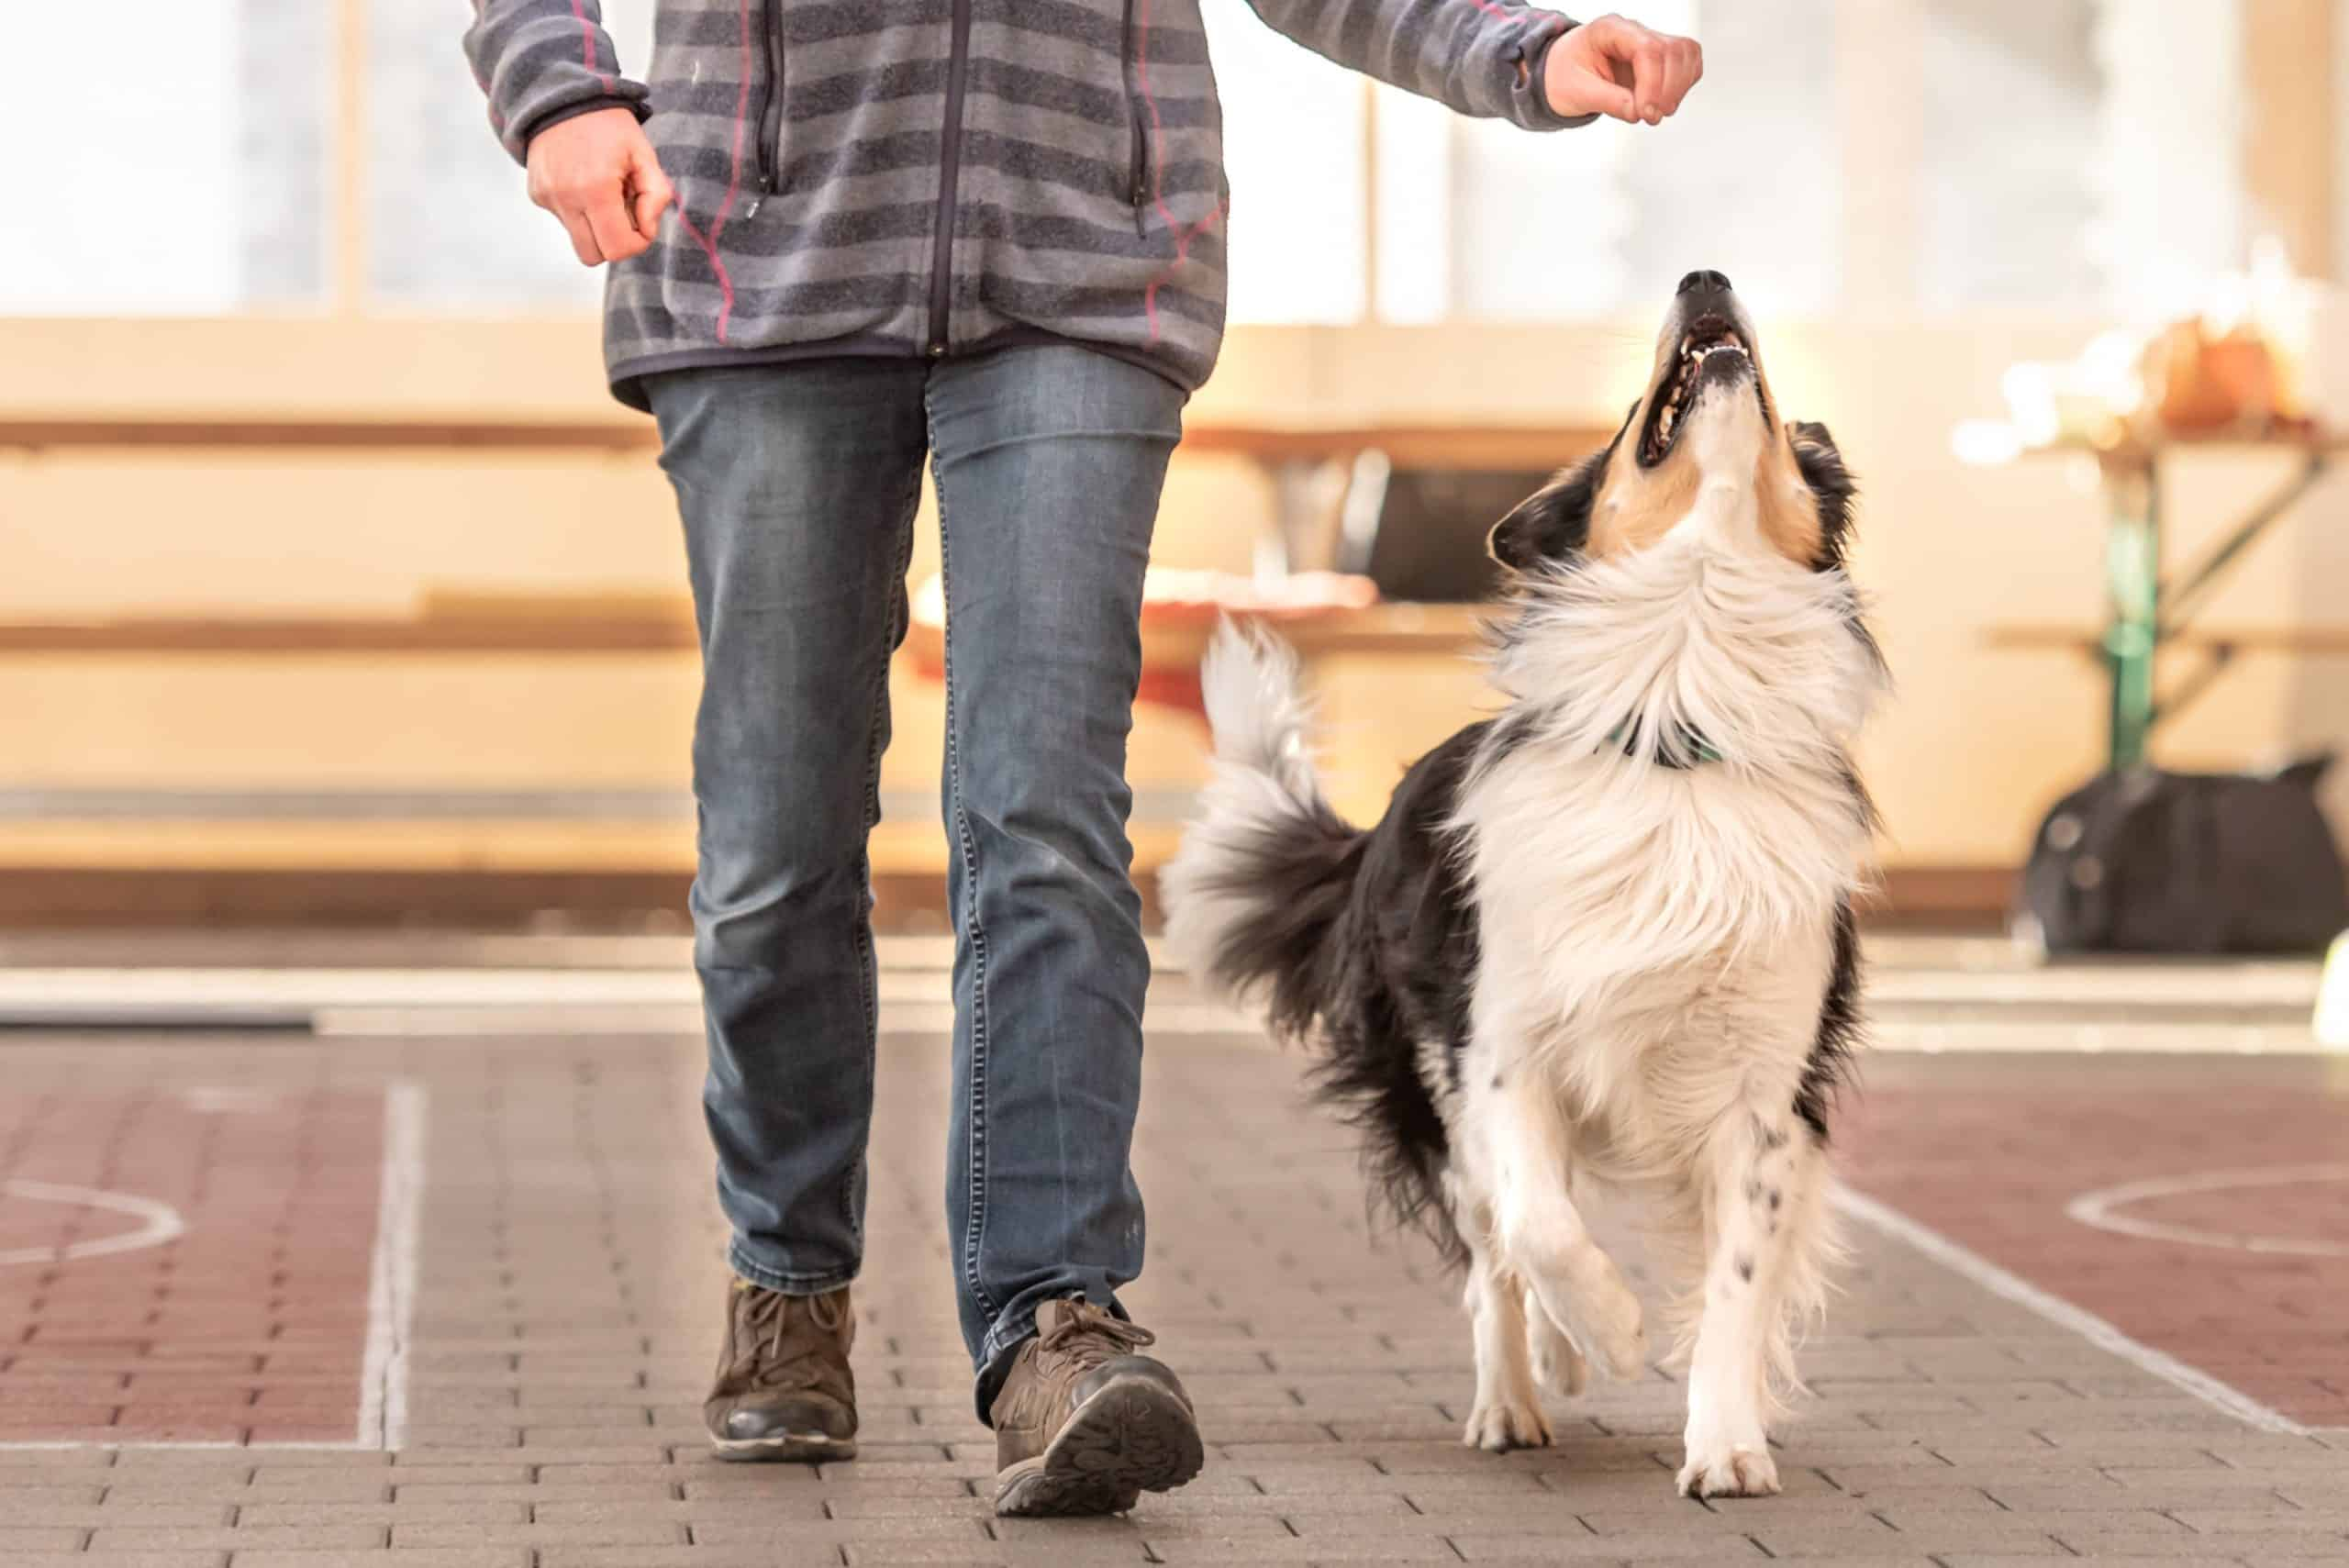 Man trains border collie with high value treat. If your dog isn't motivated by food, look at what you're giving them. You may need to offer something more appealing.